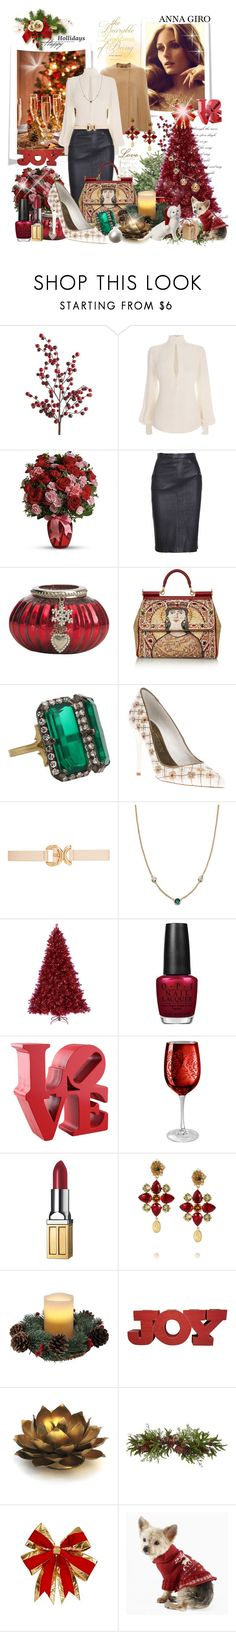 """""""Merry Christmas and Happy Holidays to all my followers and to each and every creative polyvore user"""" by annagiro ❤ liked on Polyvore featuring Pier 1 Imports, Derek Lam, Alexander McQueen, Lene Bjerre, Dolce&Gabbana, Sylva & Cie, Forever New, Elsa Peretti, OPI and Artland"""